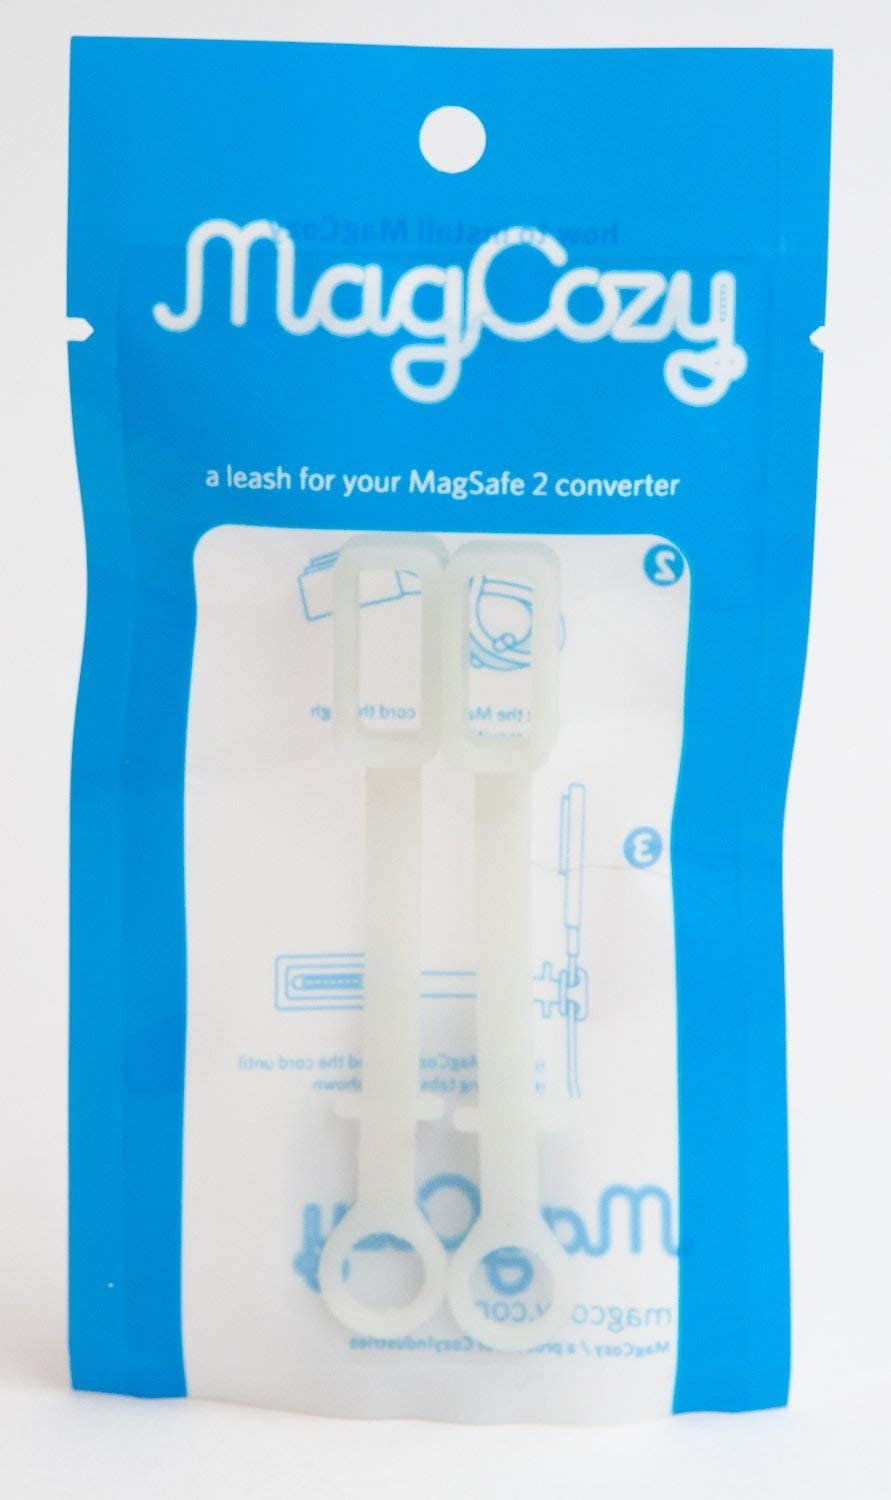 [2-Pack] MagCozy Leash Compatible with The Apple MagSafe to MagSafe 2 Converter, Never Lose a Pro to Air Adapter Again, Thunderbolt Display (White)